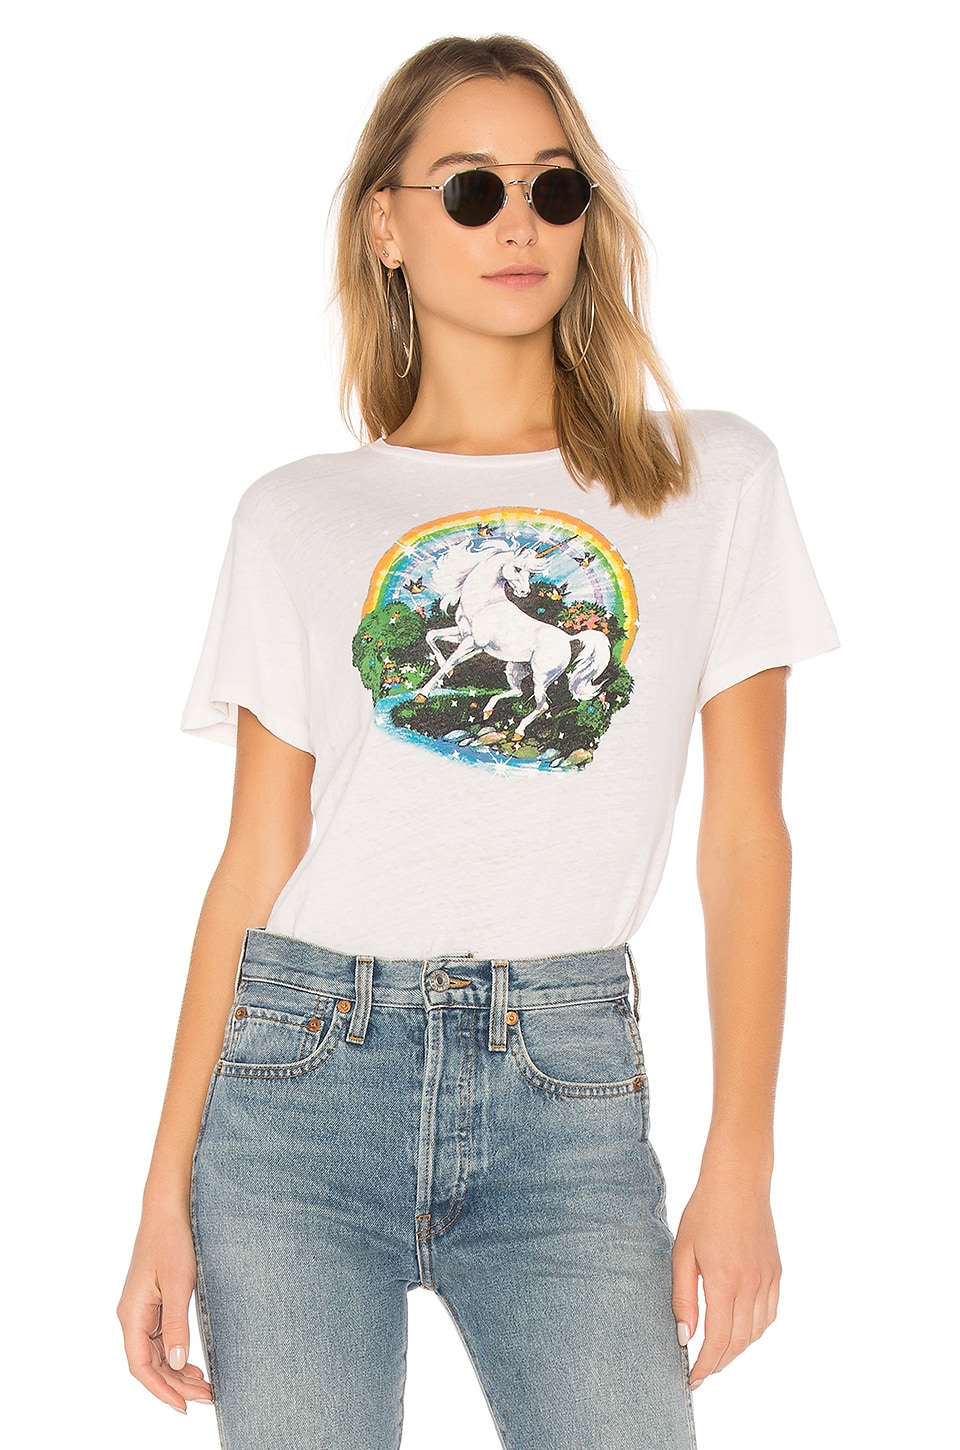 RE/DONE Originals Unicorn Dream Tee in Vintage White